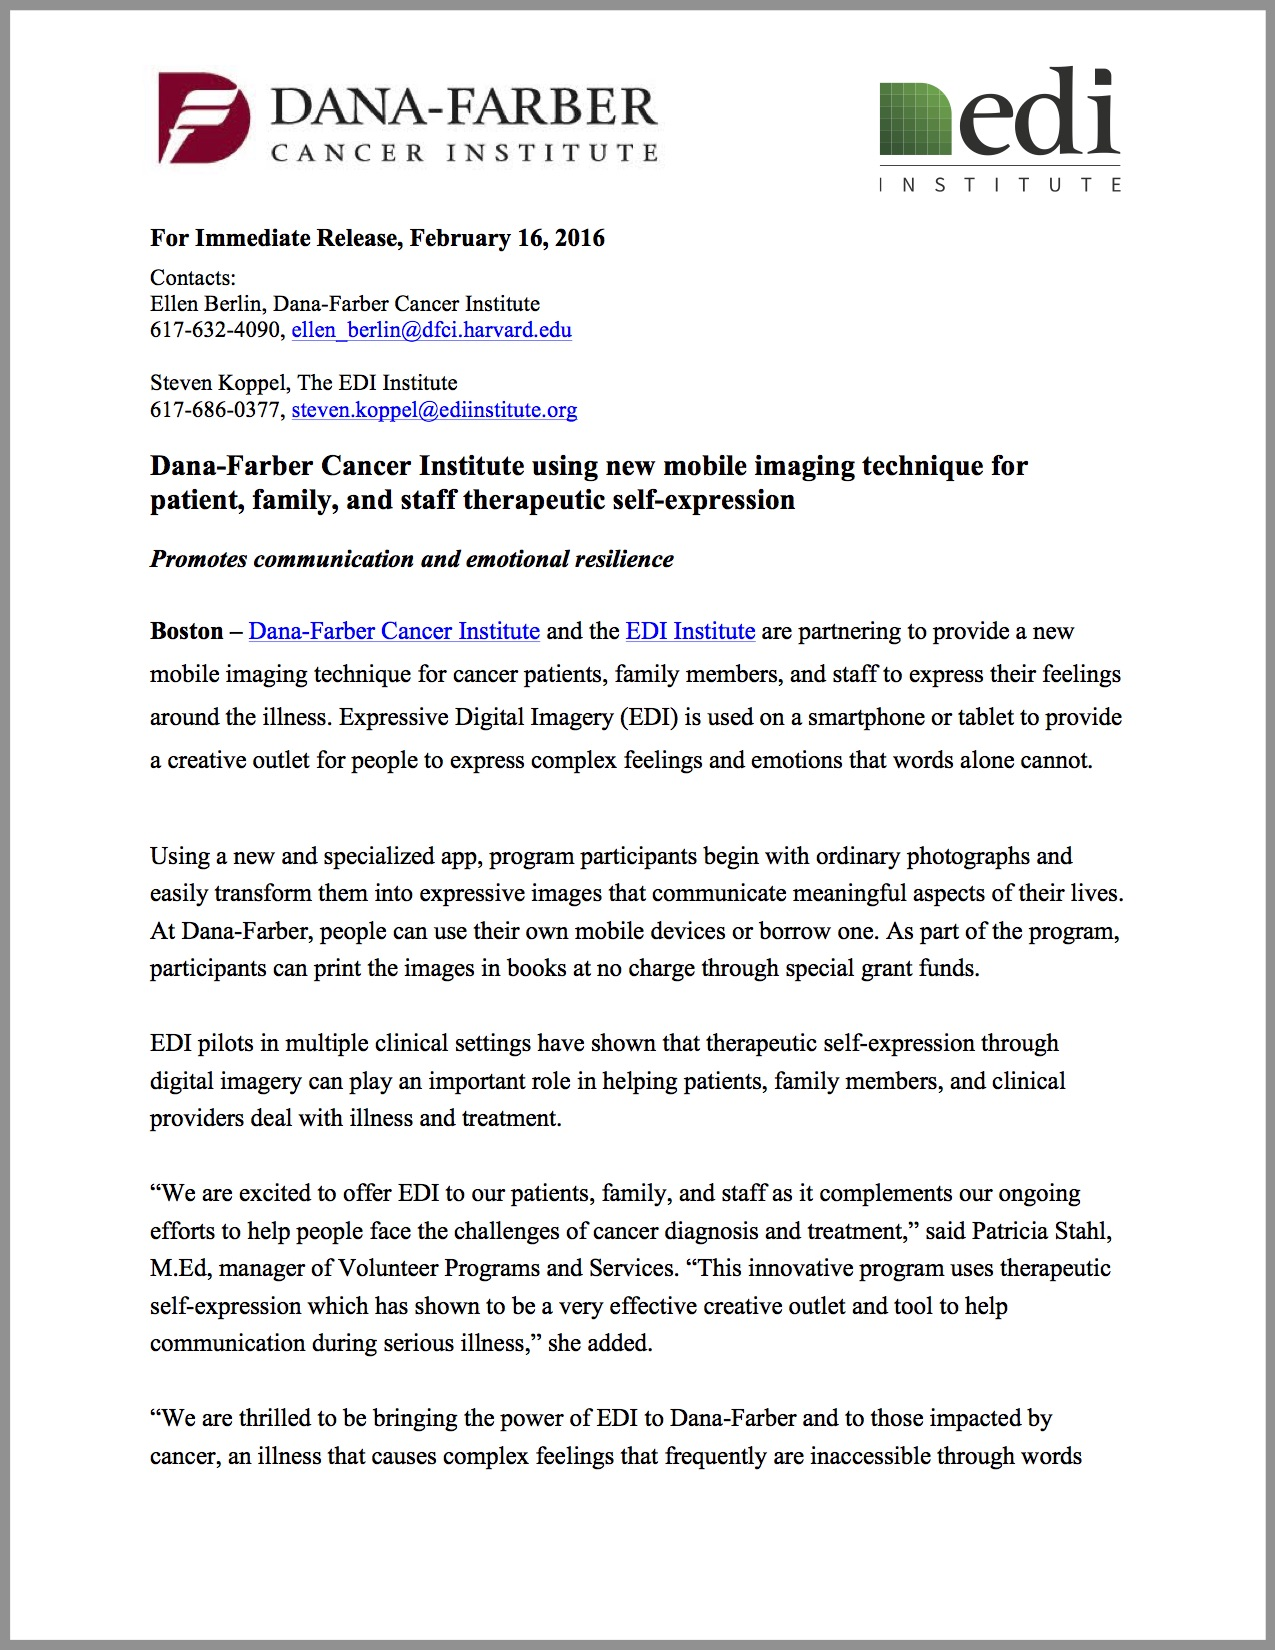 Press Release: Dana-Farber Cancer Institute using new mobile imaging technique for patient, family, and staff therapeutic self-expression